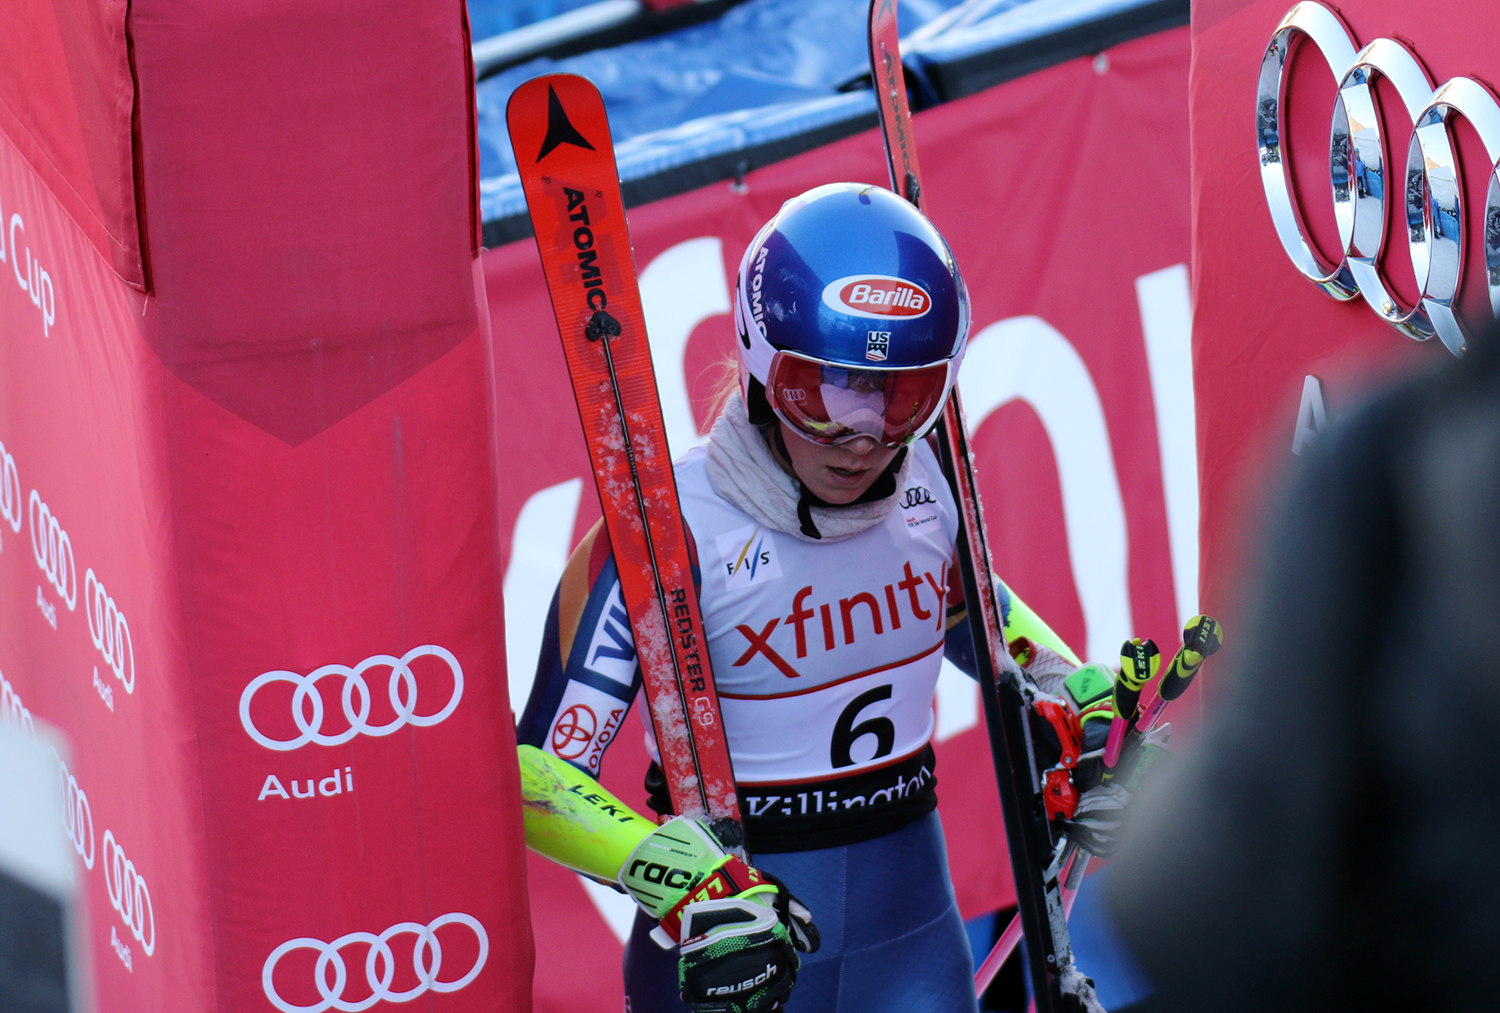 U.S.A.'s Mikaela Shiffrin leaves the finish area after competing in the first run at the women's Audi FIS Ski World Cup giant slalom race at Killington in Vermont on Saturday, November 25, 2017. (FTO photo: Martin Griff)